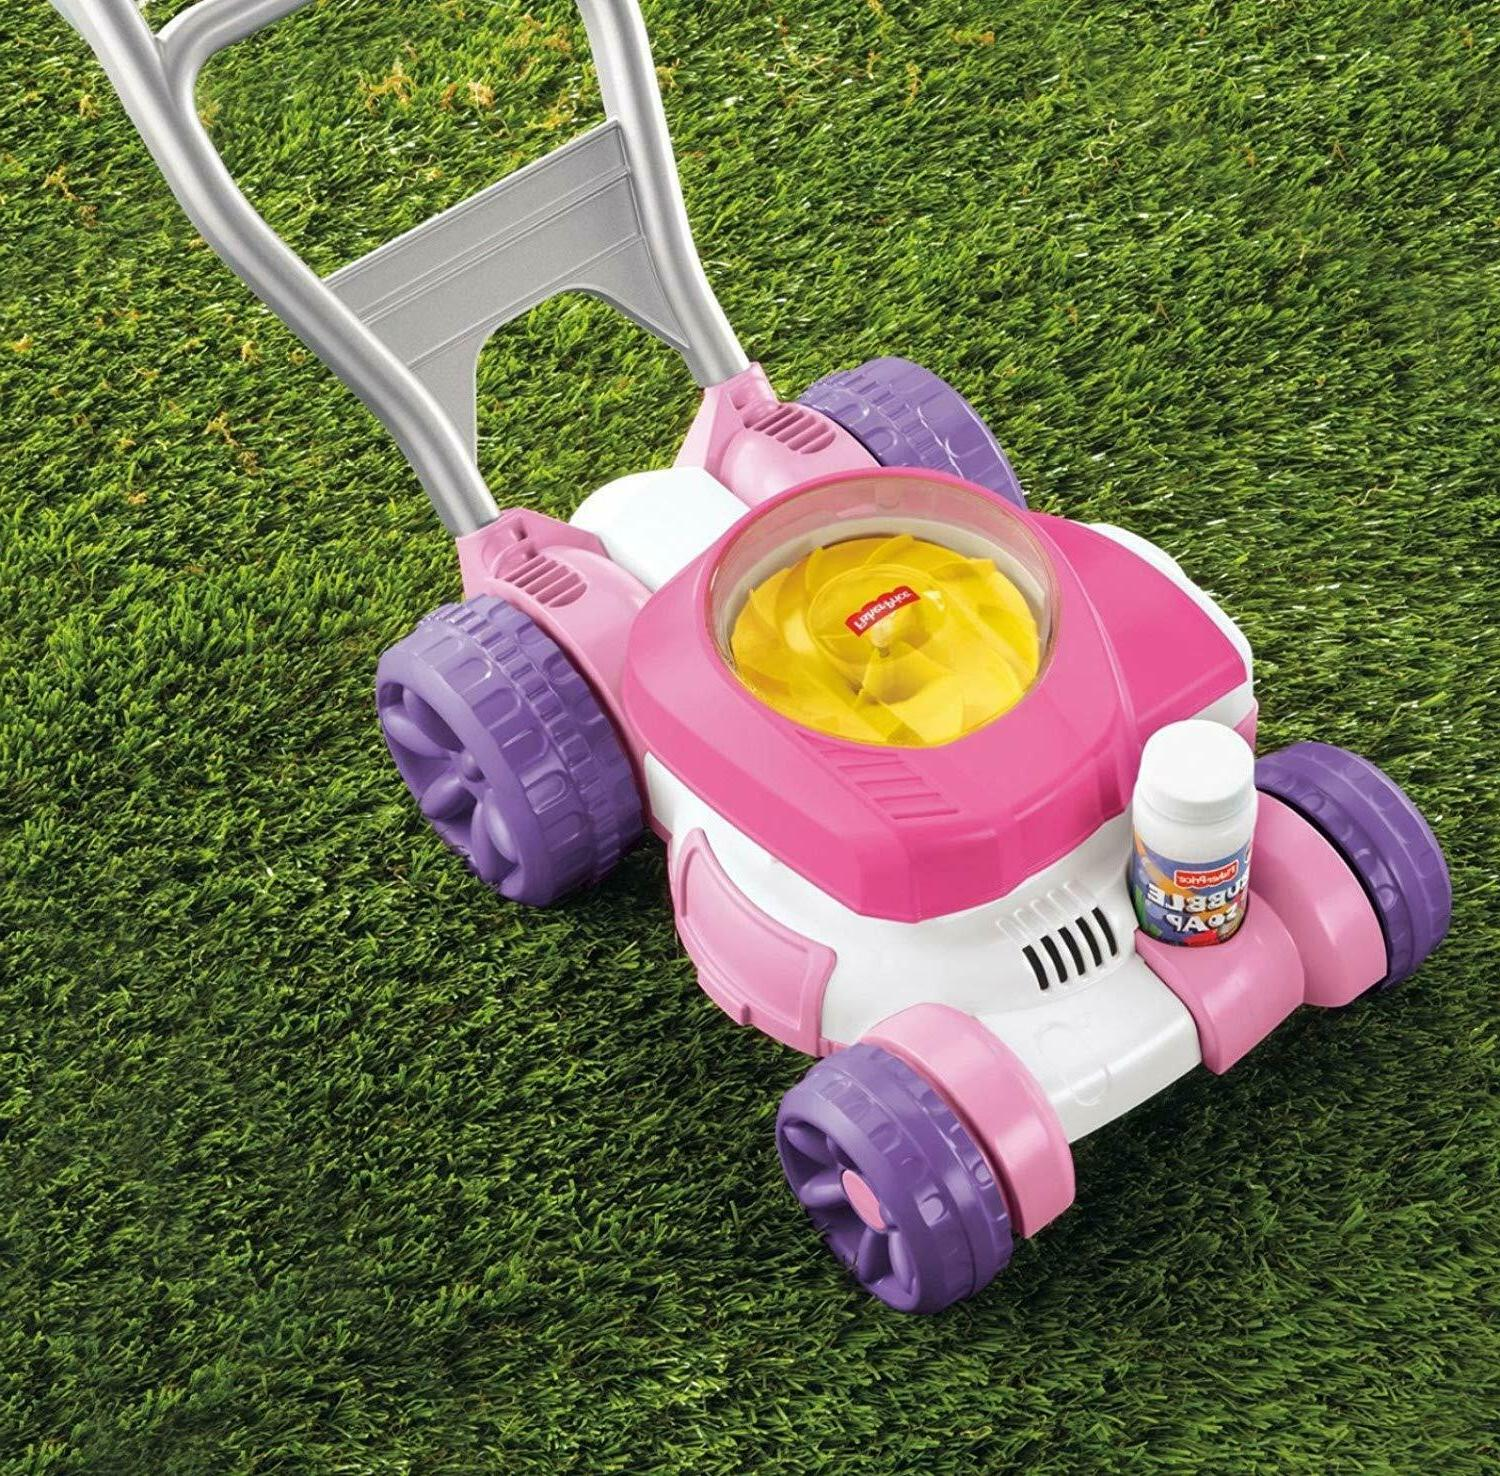 Fisher-Price Bubble Push Lawn Mower Outdoors Toddler,Kids, T